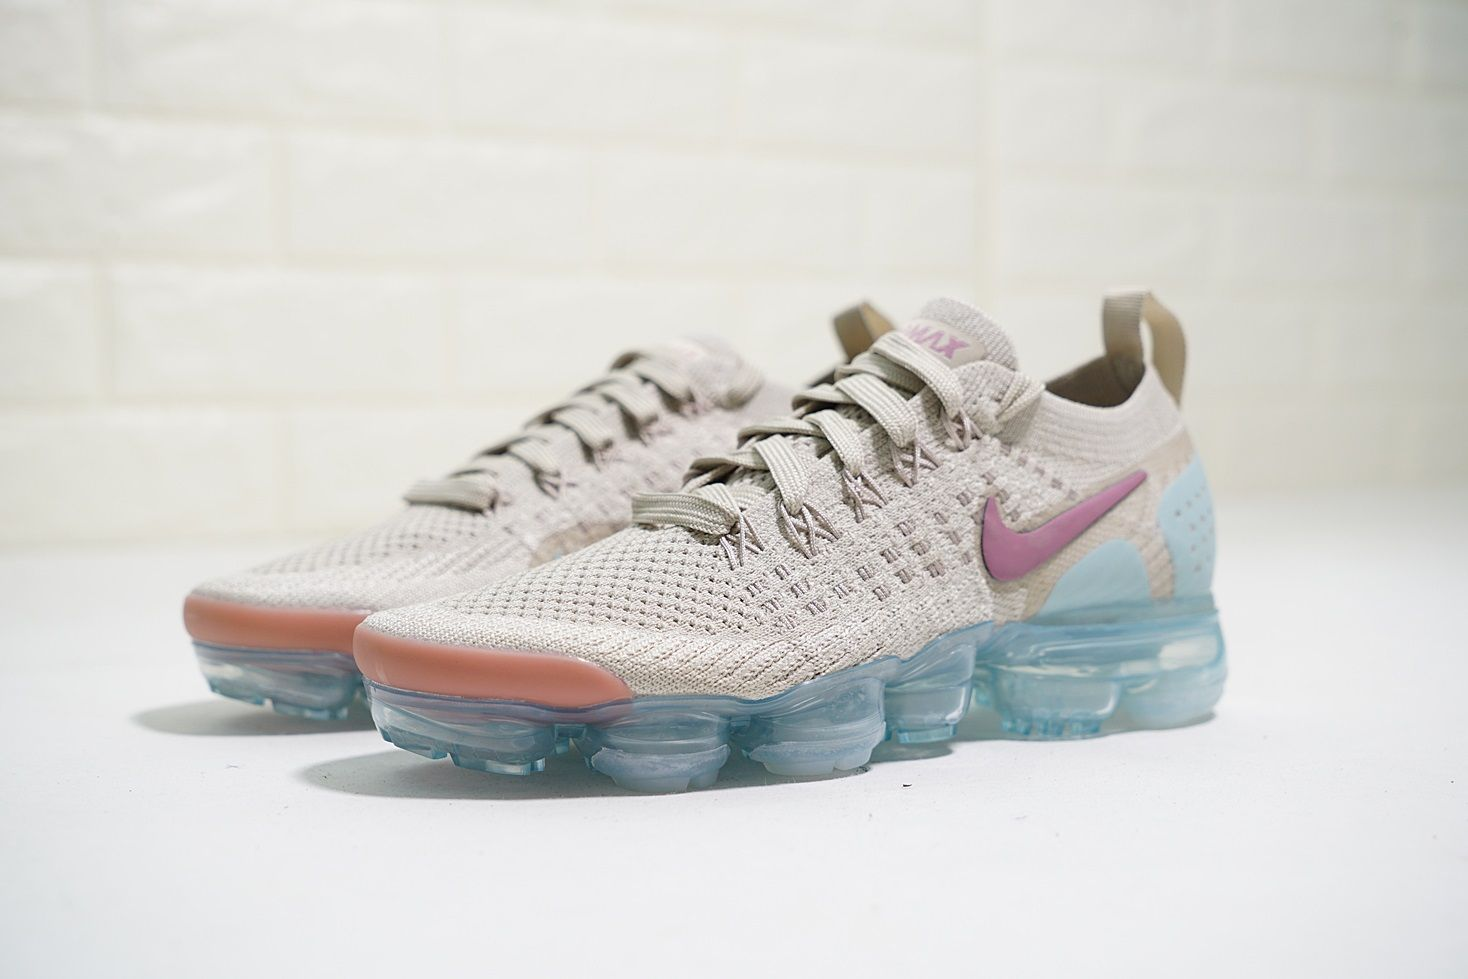 a40c88a663e1 NIKE AIR VAPORMAX FLYKNIT 2 KHAKI LIGHT BLUE PURPLE 942843 203 ...